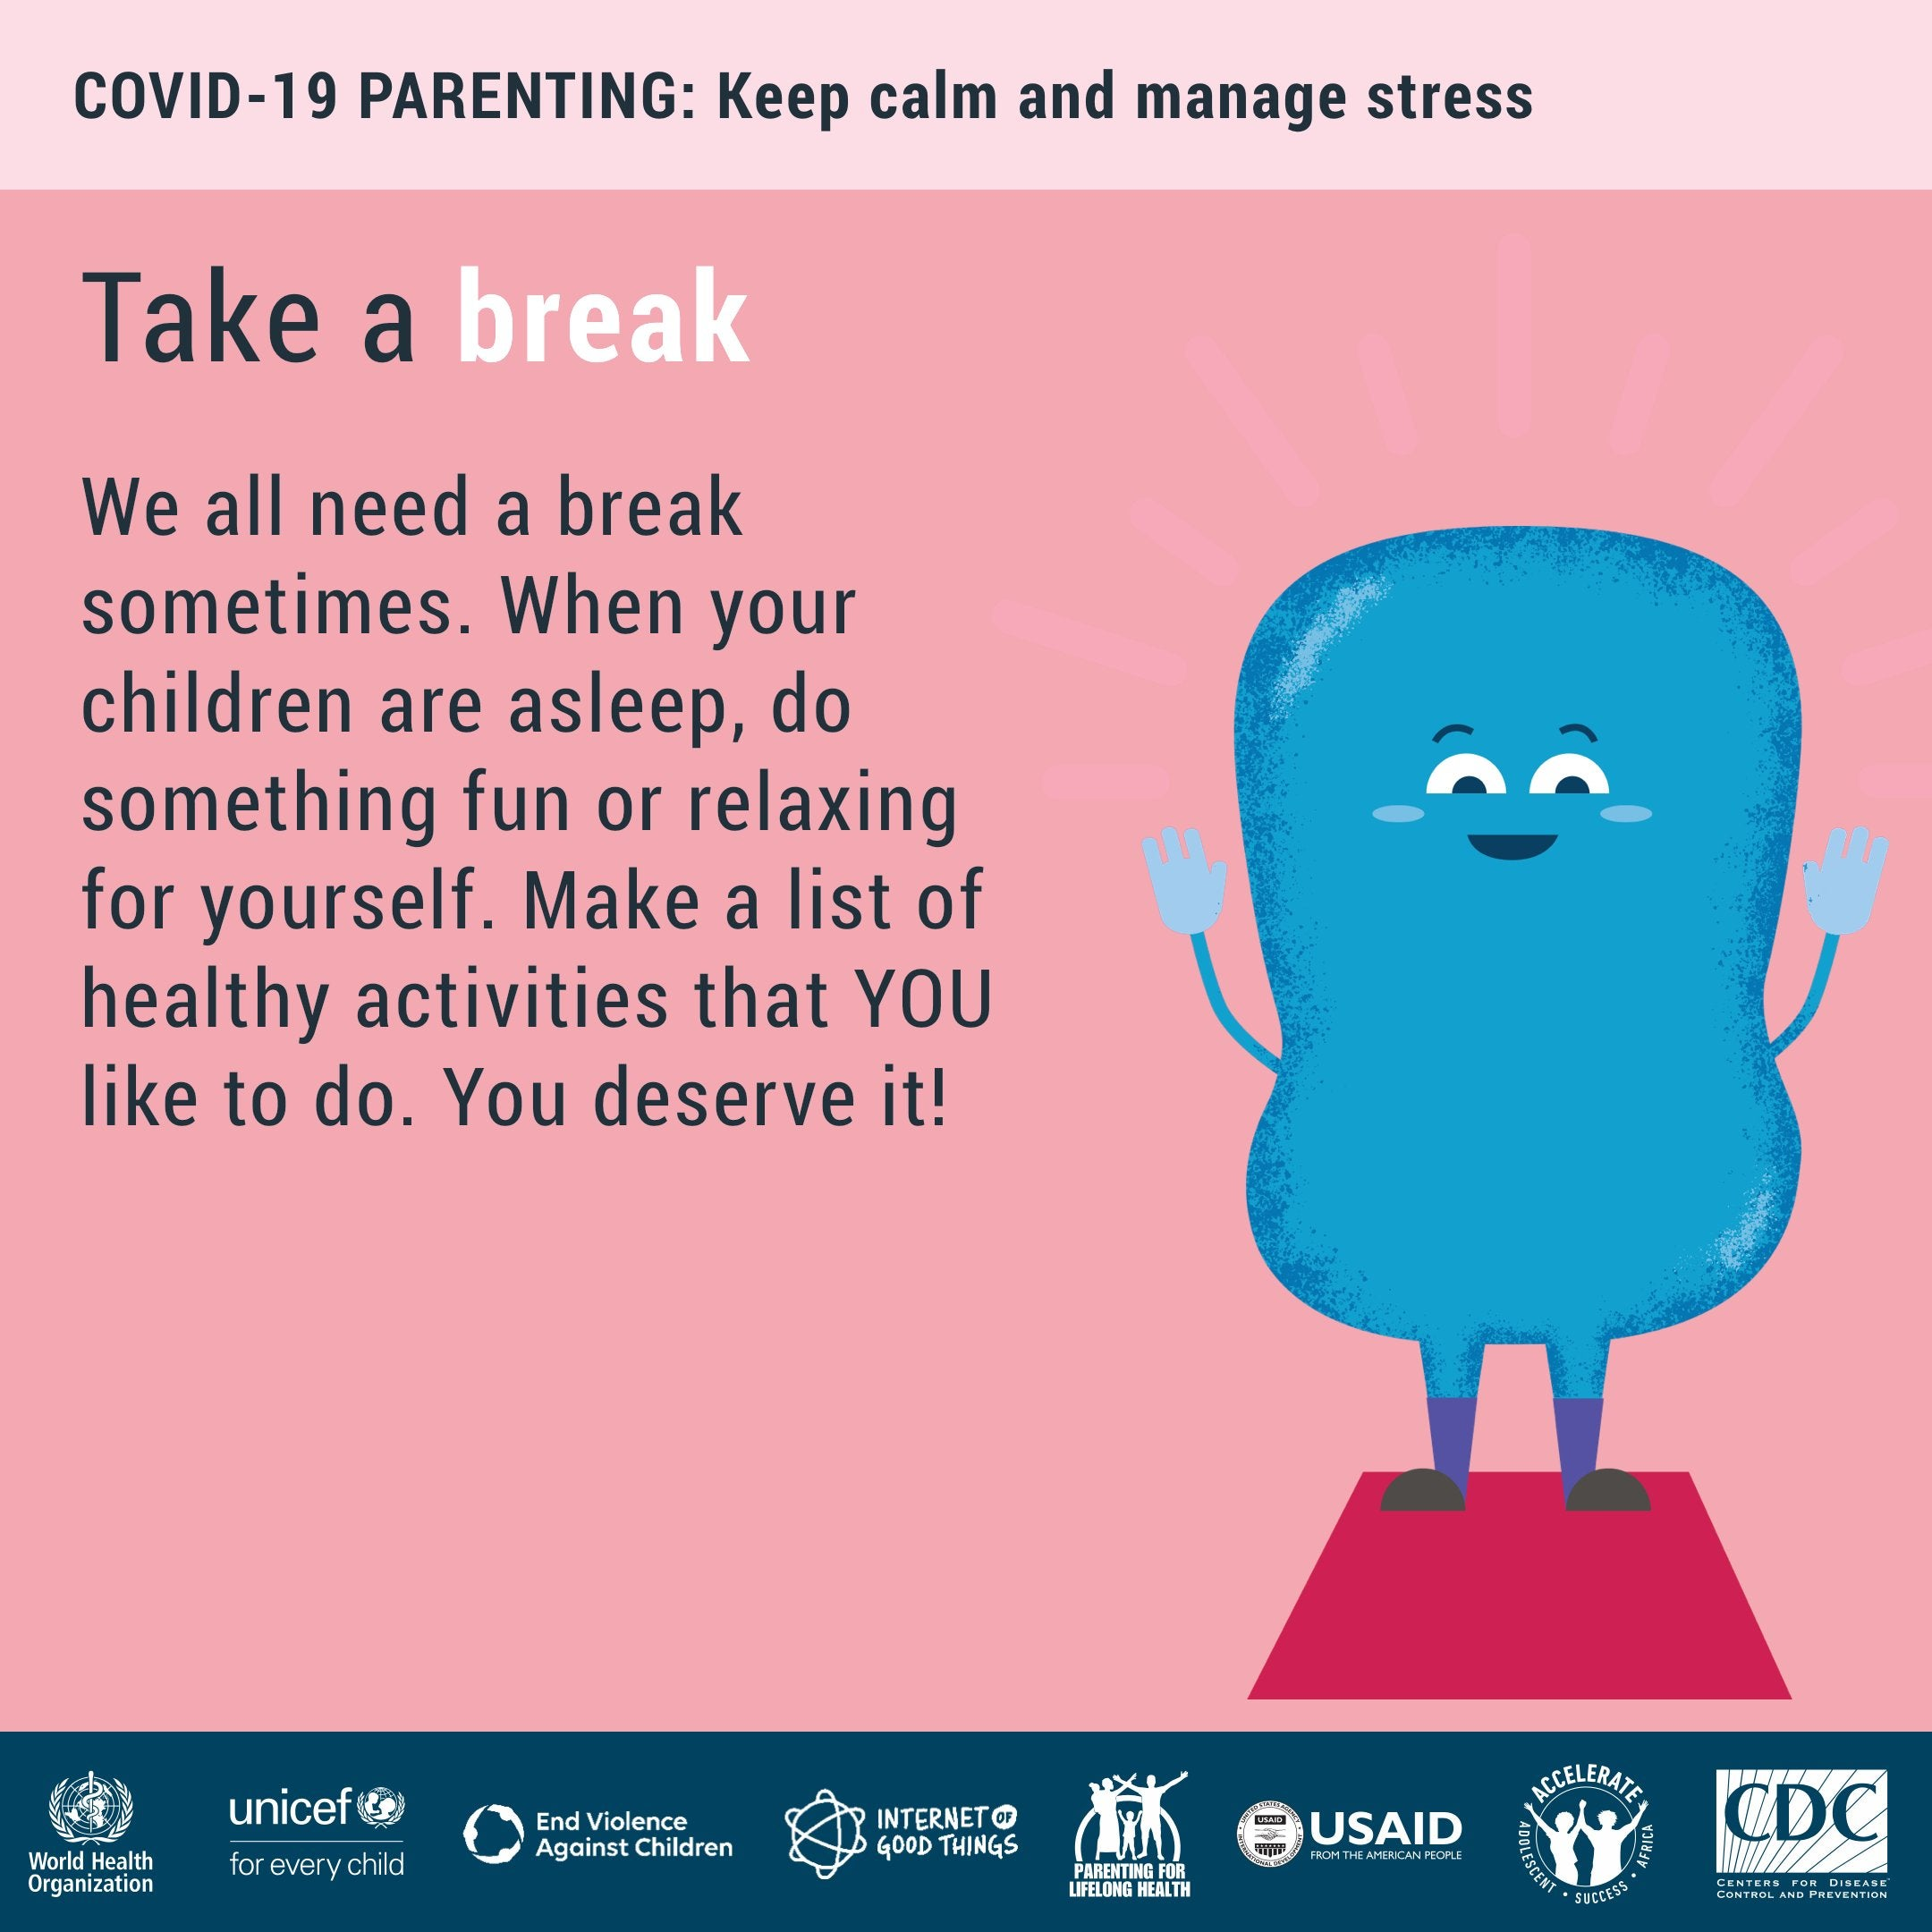 Keep calm and manage stress